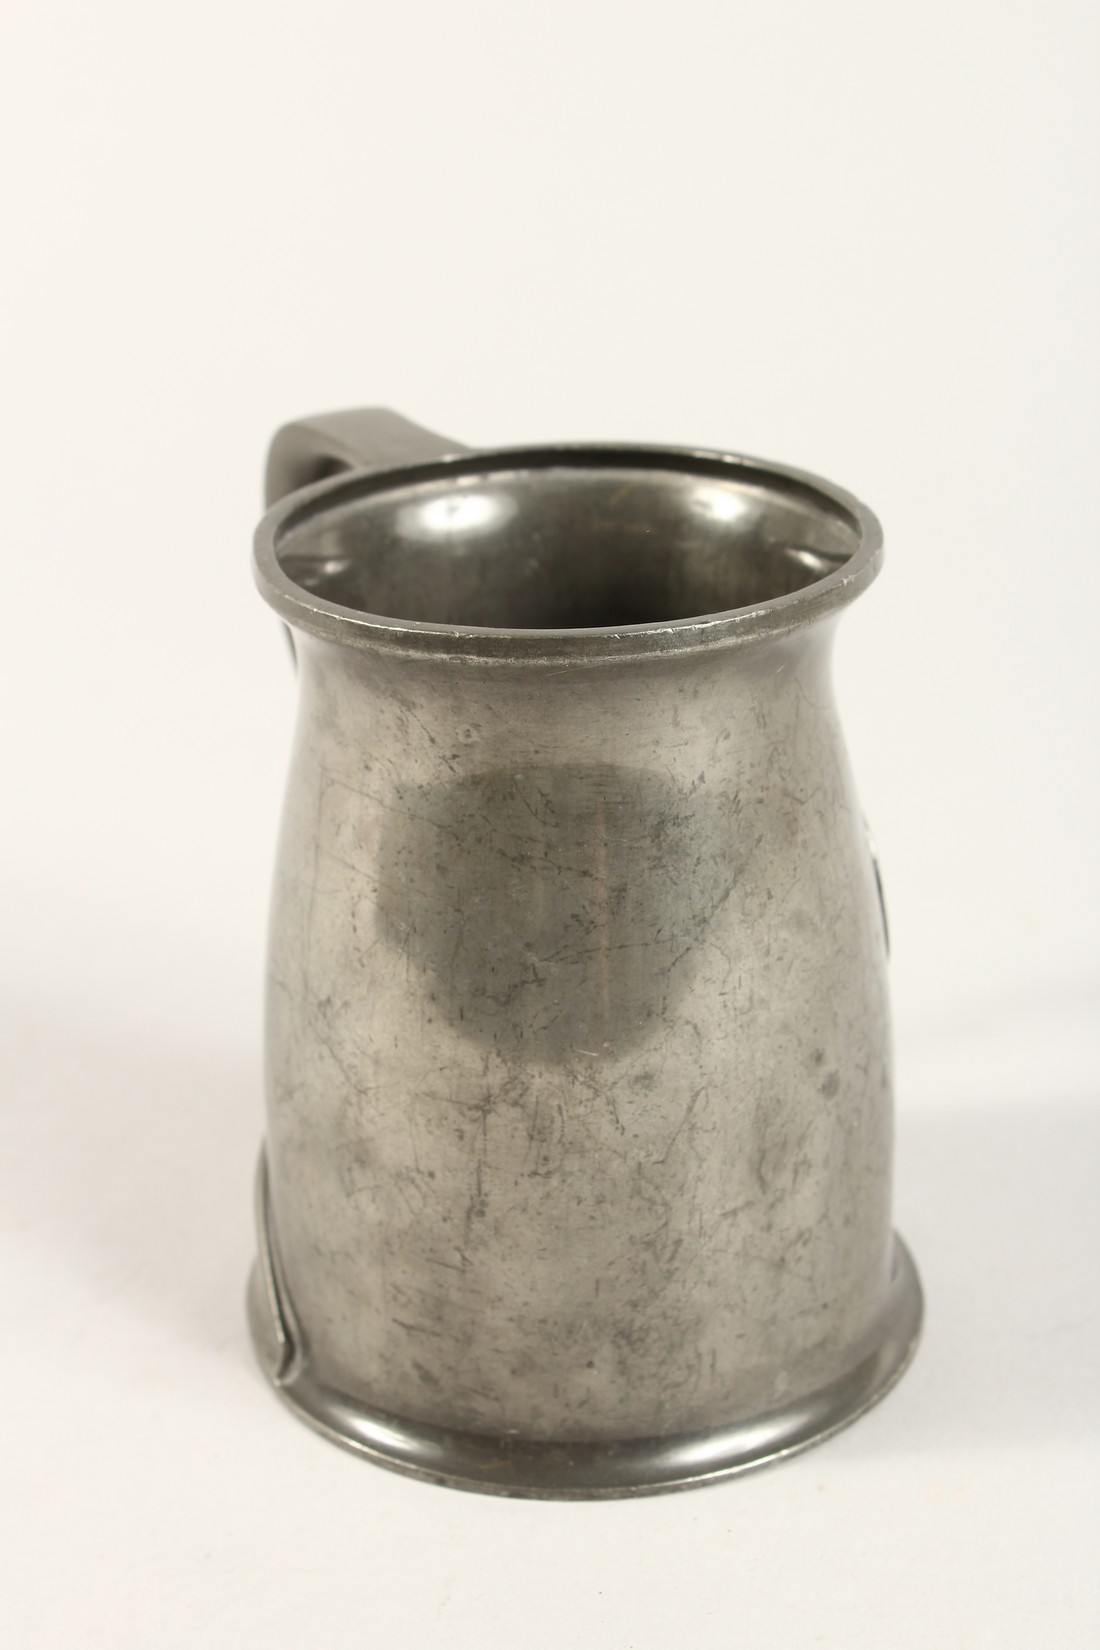 A TUDRIC ARCHIBALD KNOX PEWTER TANKARD with an oval of a golfer No. 066 4.25ins high. - Image 4 of 6